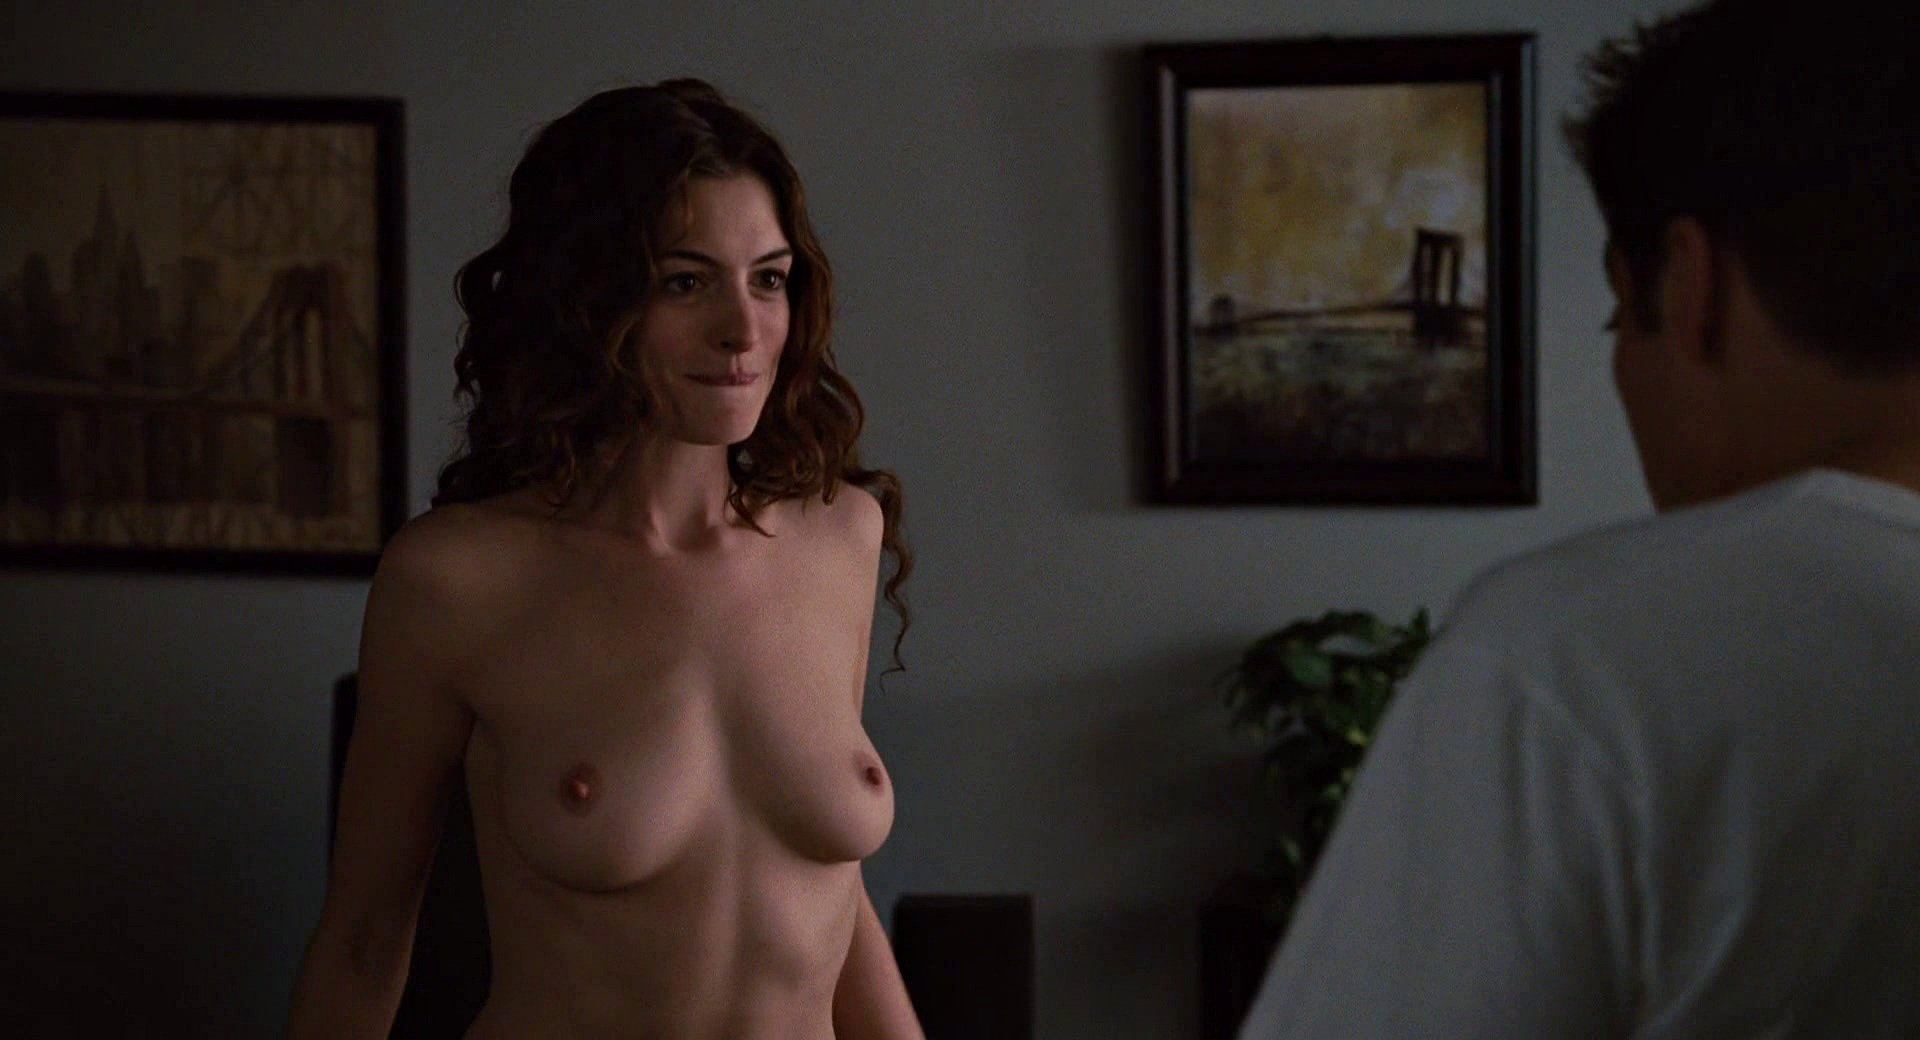 anne hathaway leaked pics